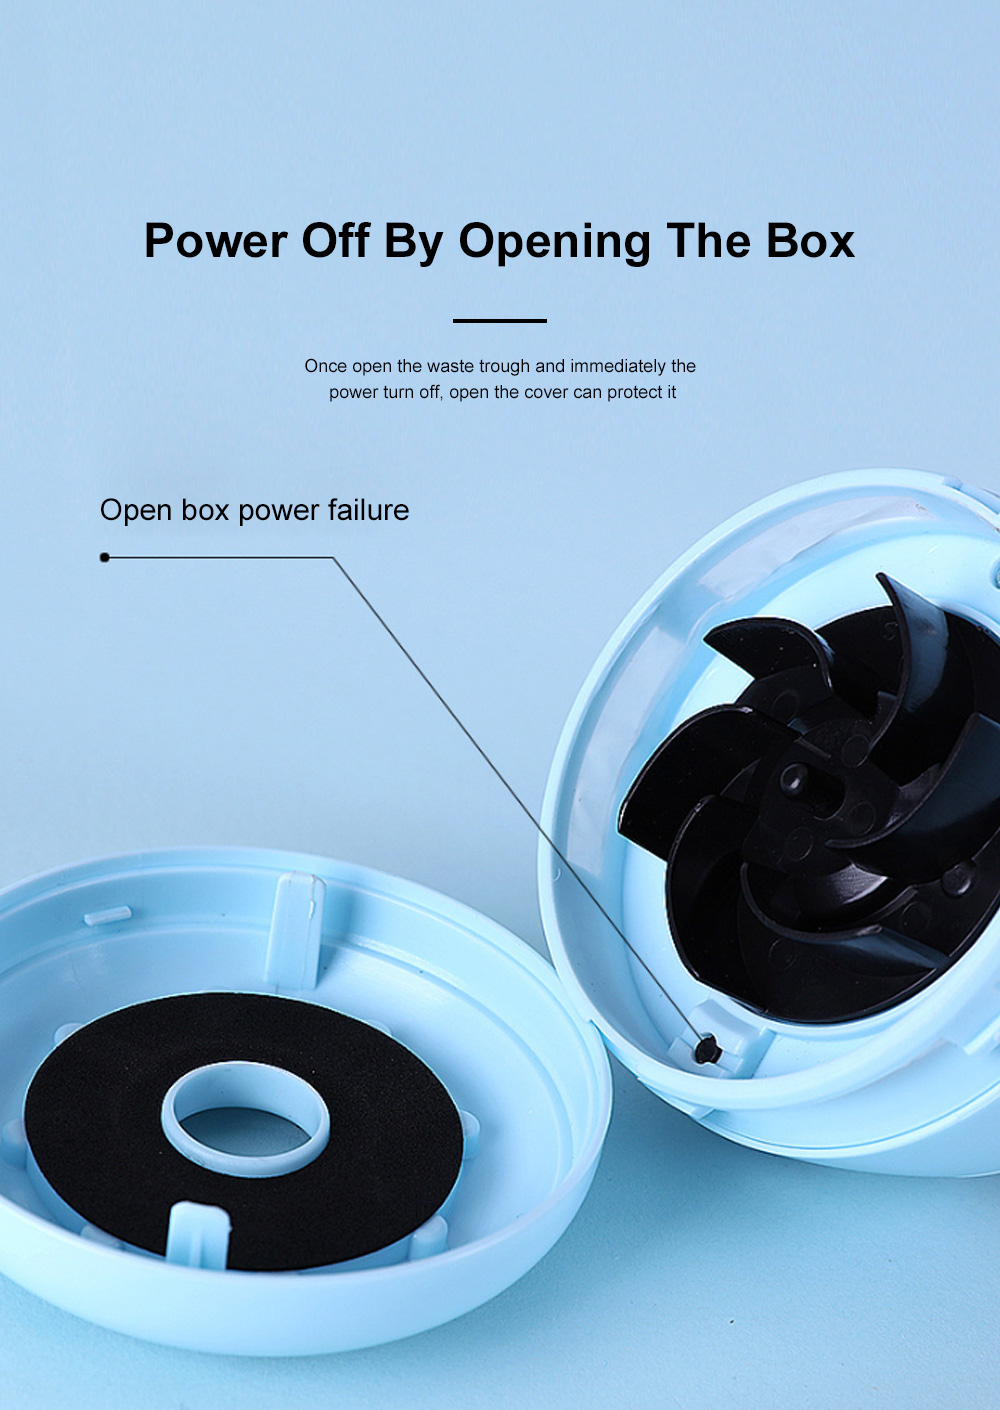 Mini Vacuum Cleaner Desktop Office Cleaner Easily Inhaled Paper Dust Suction Strong And Convenient 5